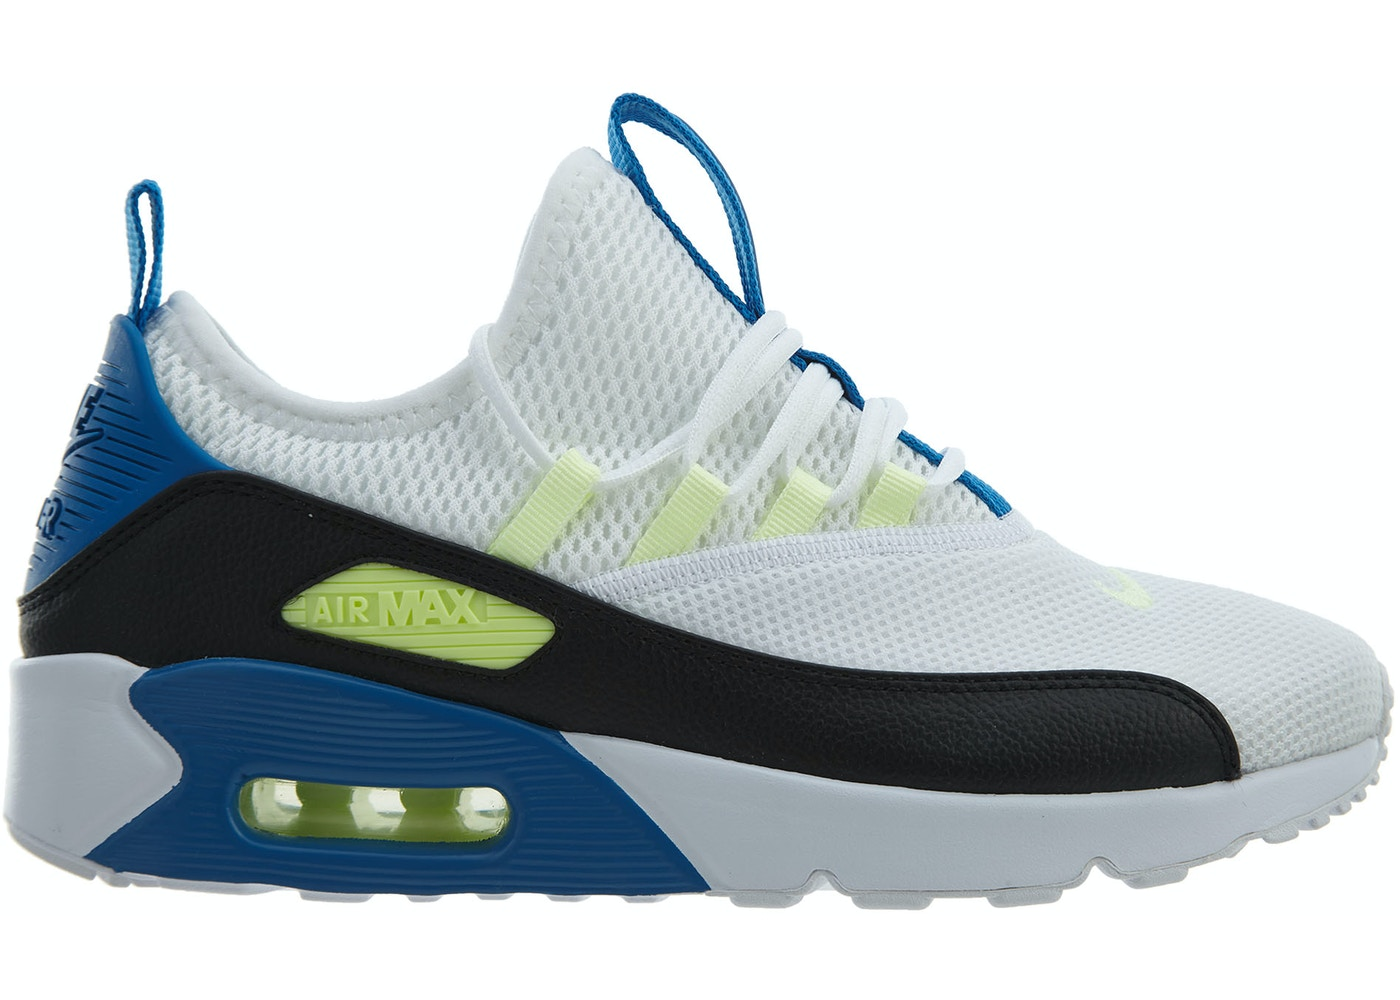 9ba02b00216 Air Max 90 Ez White Black-Blue Nebula (W) - AO1520-102